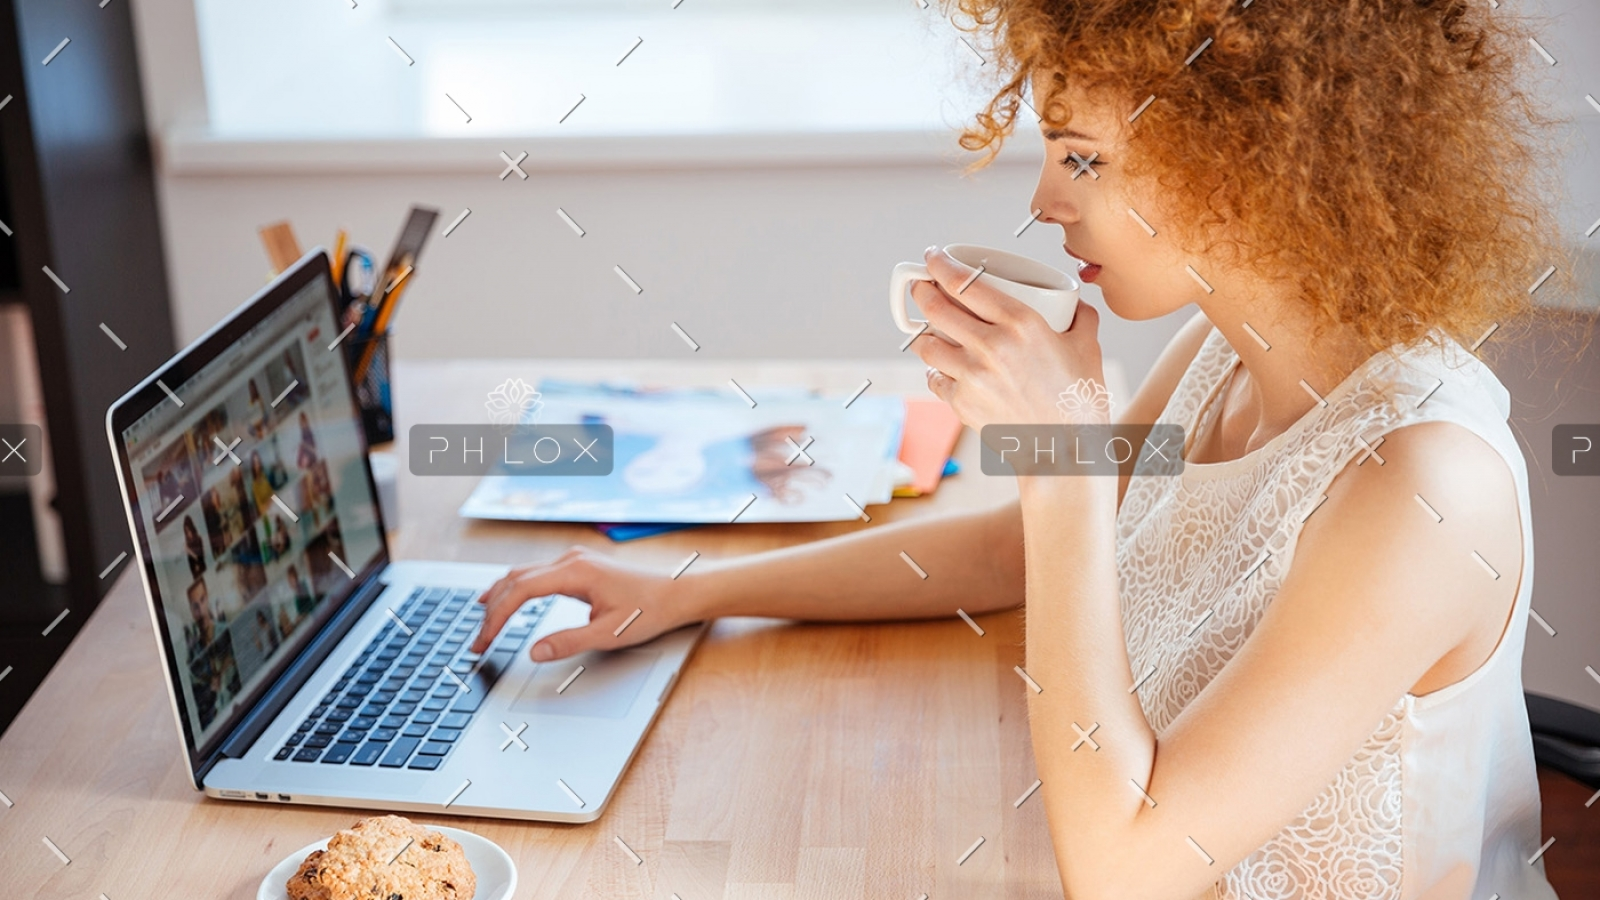 woman-photographer-drinking-coffee-and-working-PJNBP6U-1